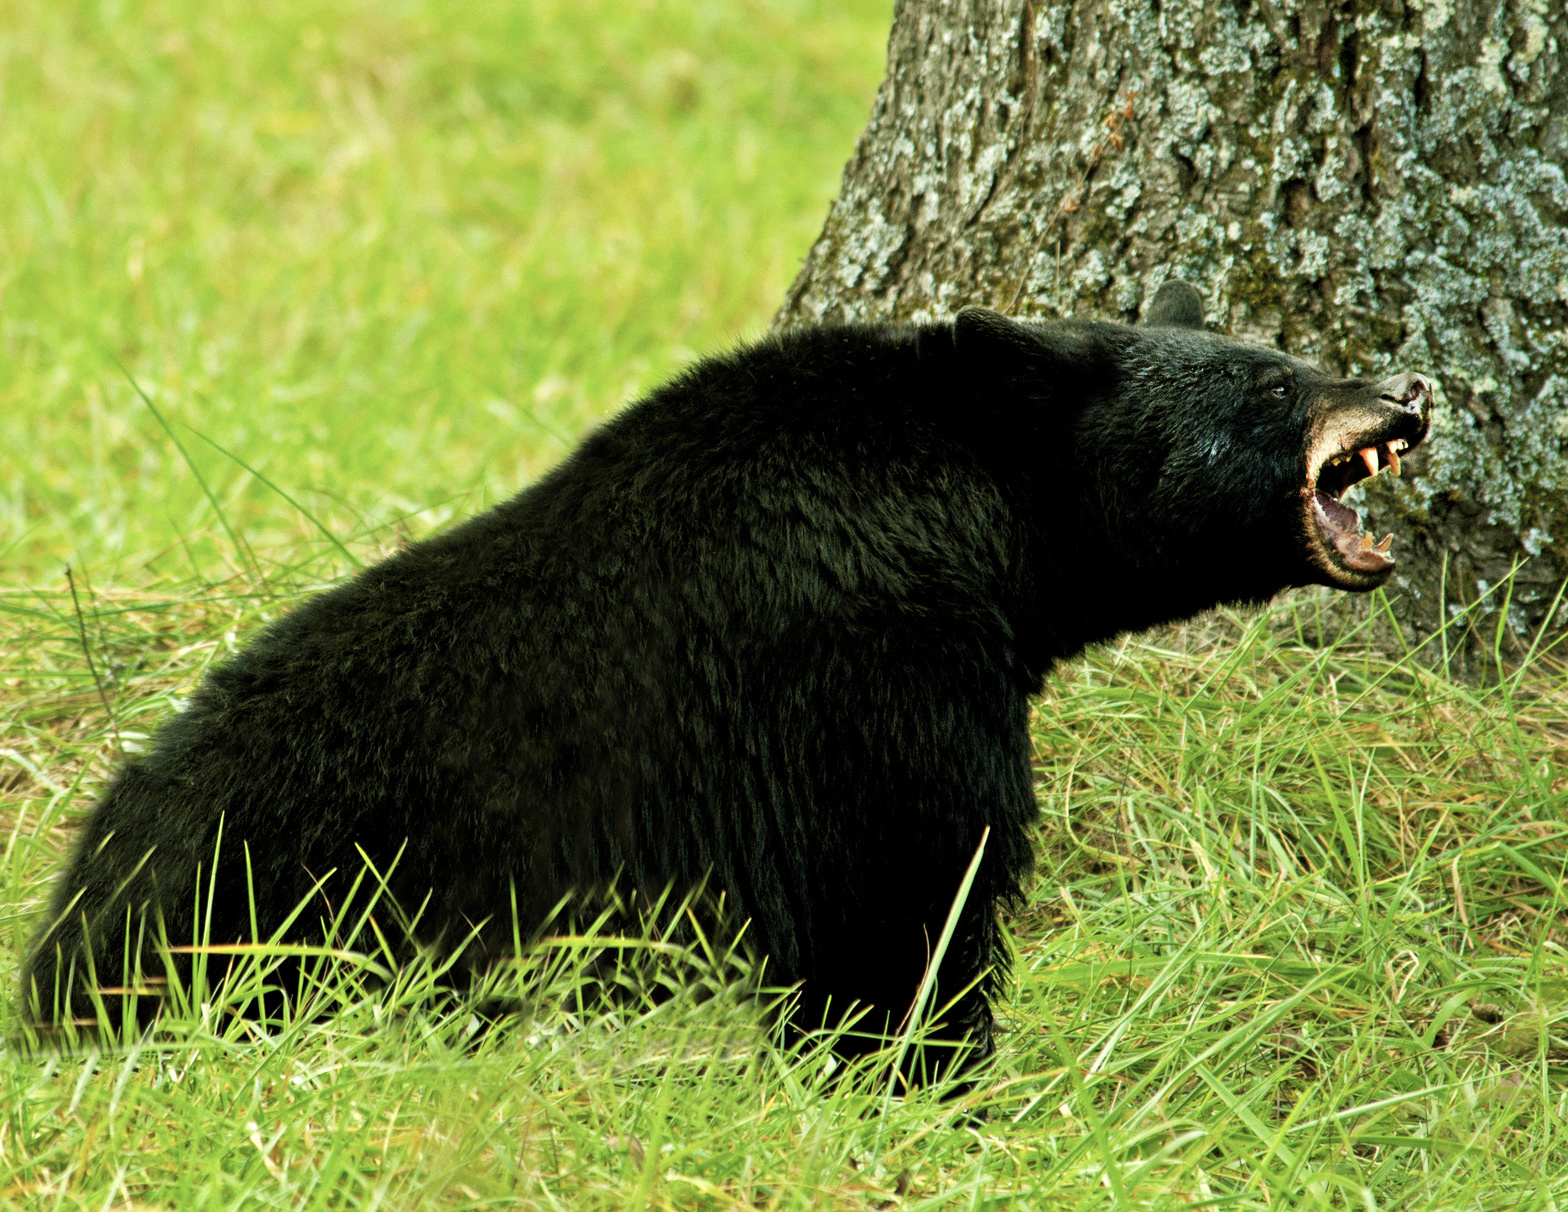 5 Reasons to Never Approach a Black Bear